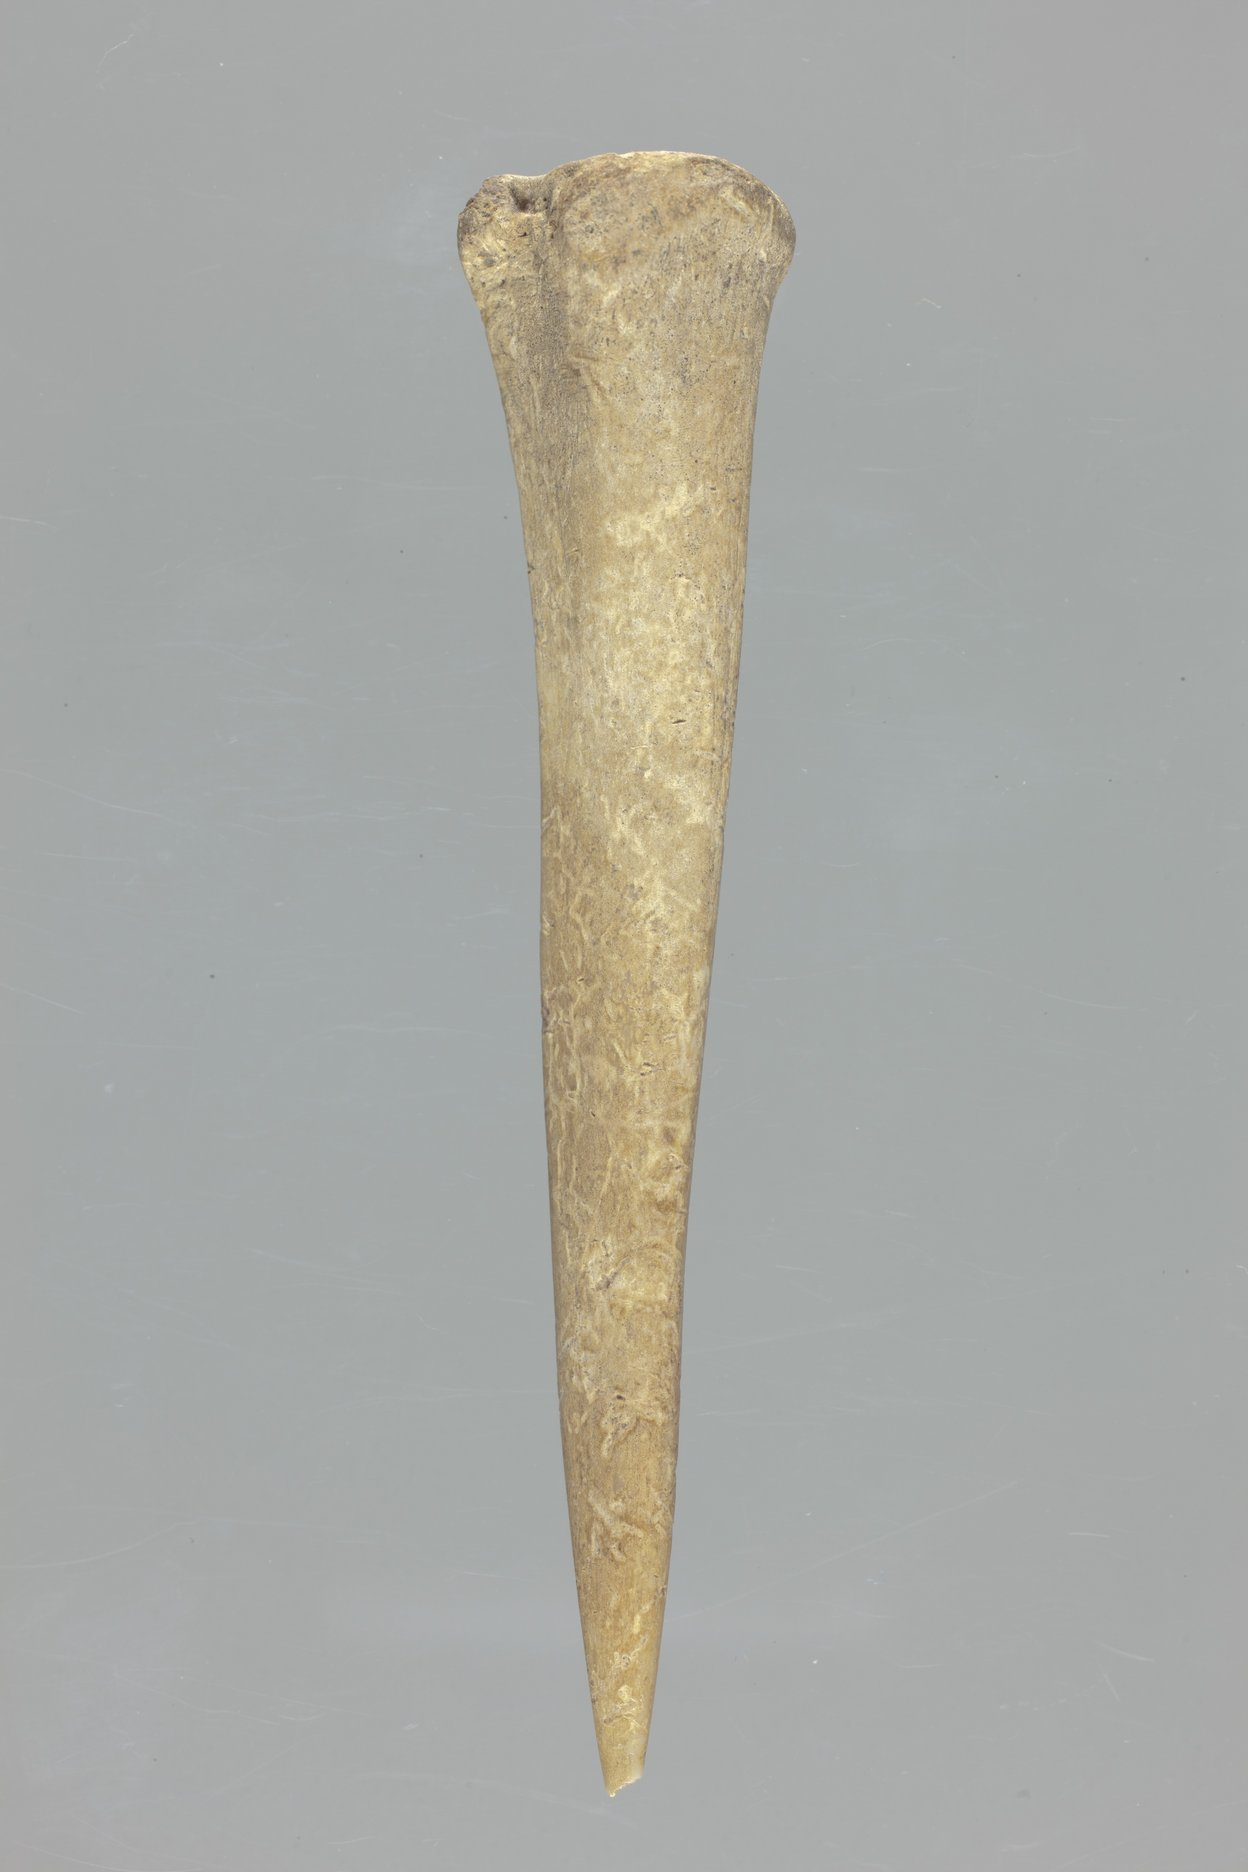 Bone Awl from the Lundeen Site, 14MD306 - 1